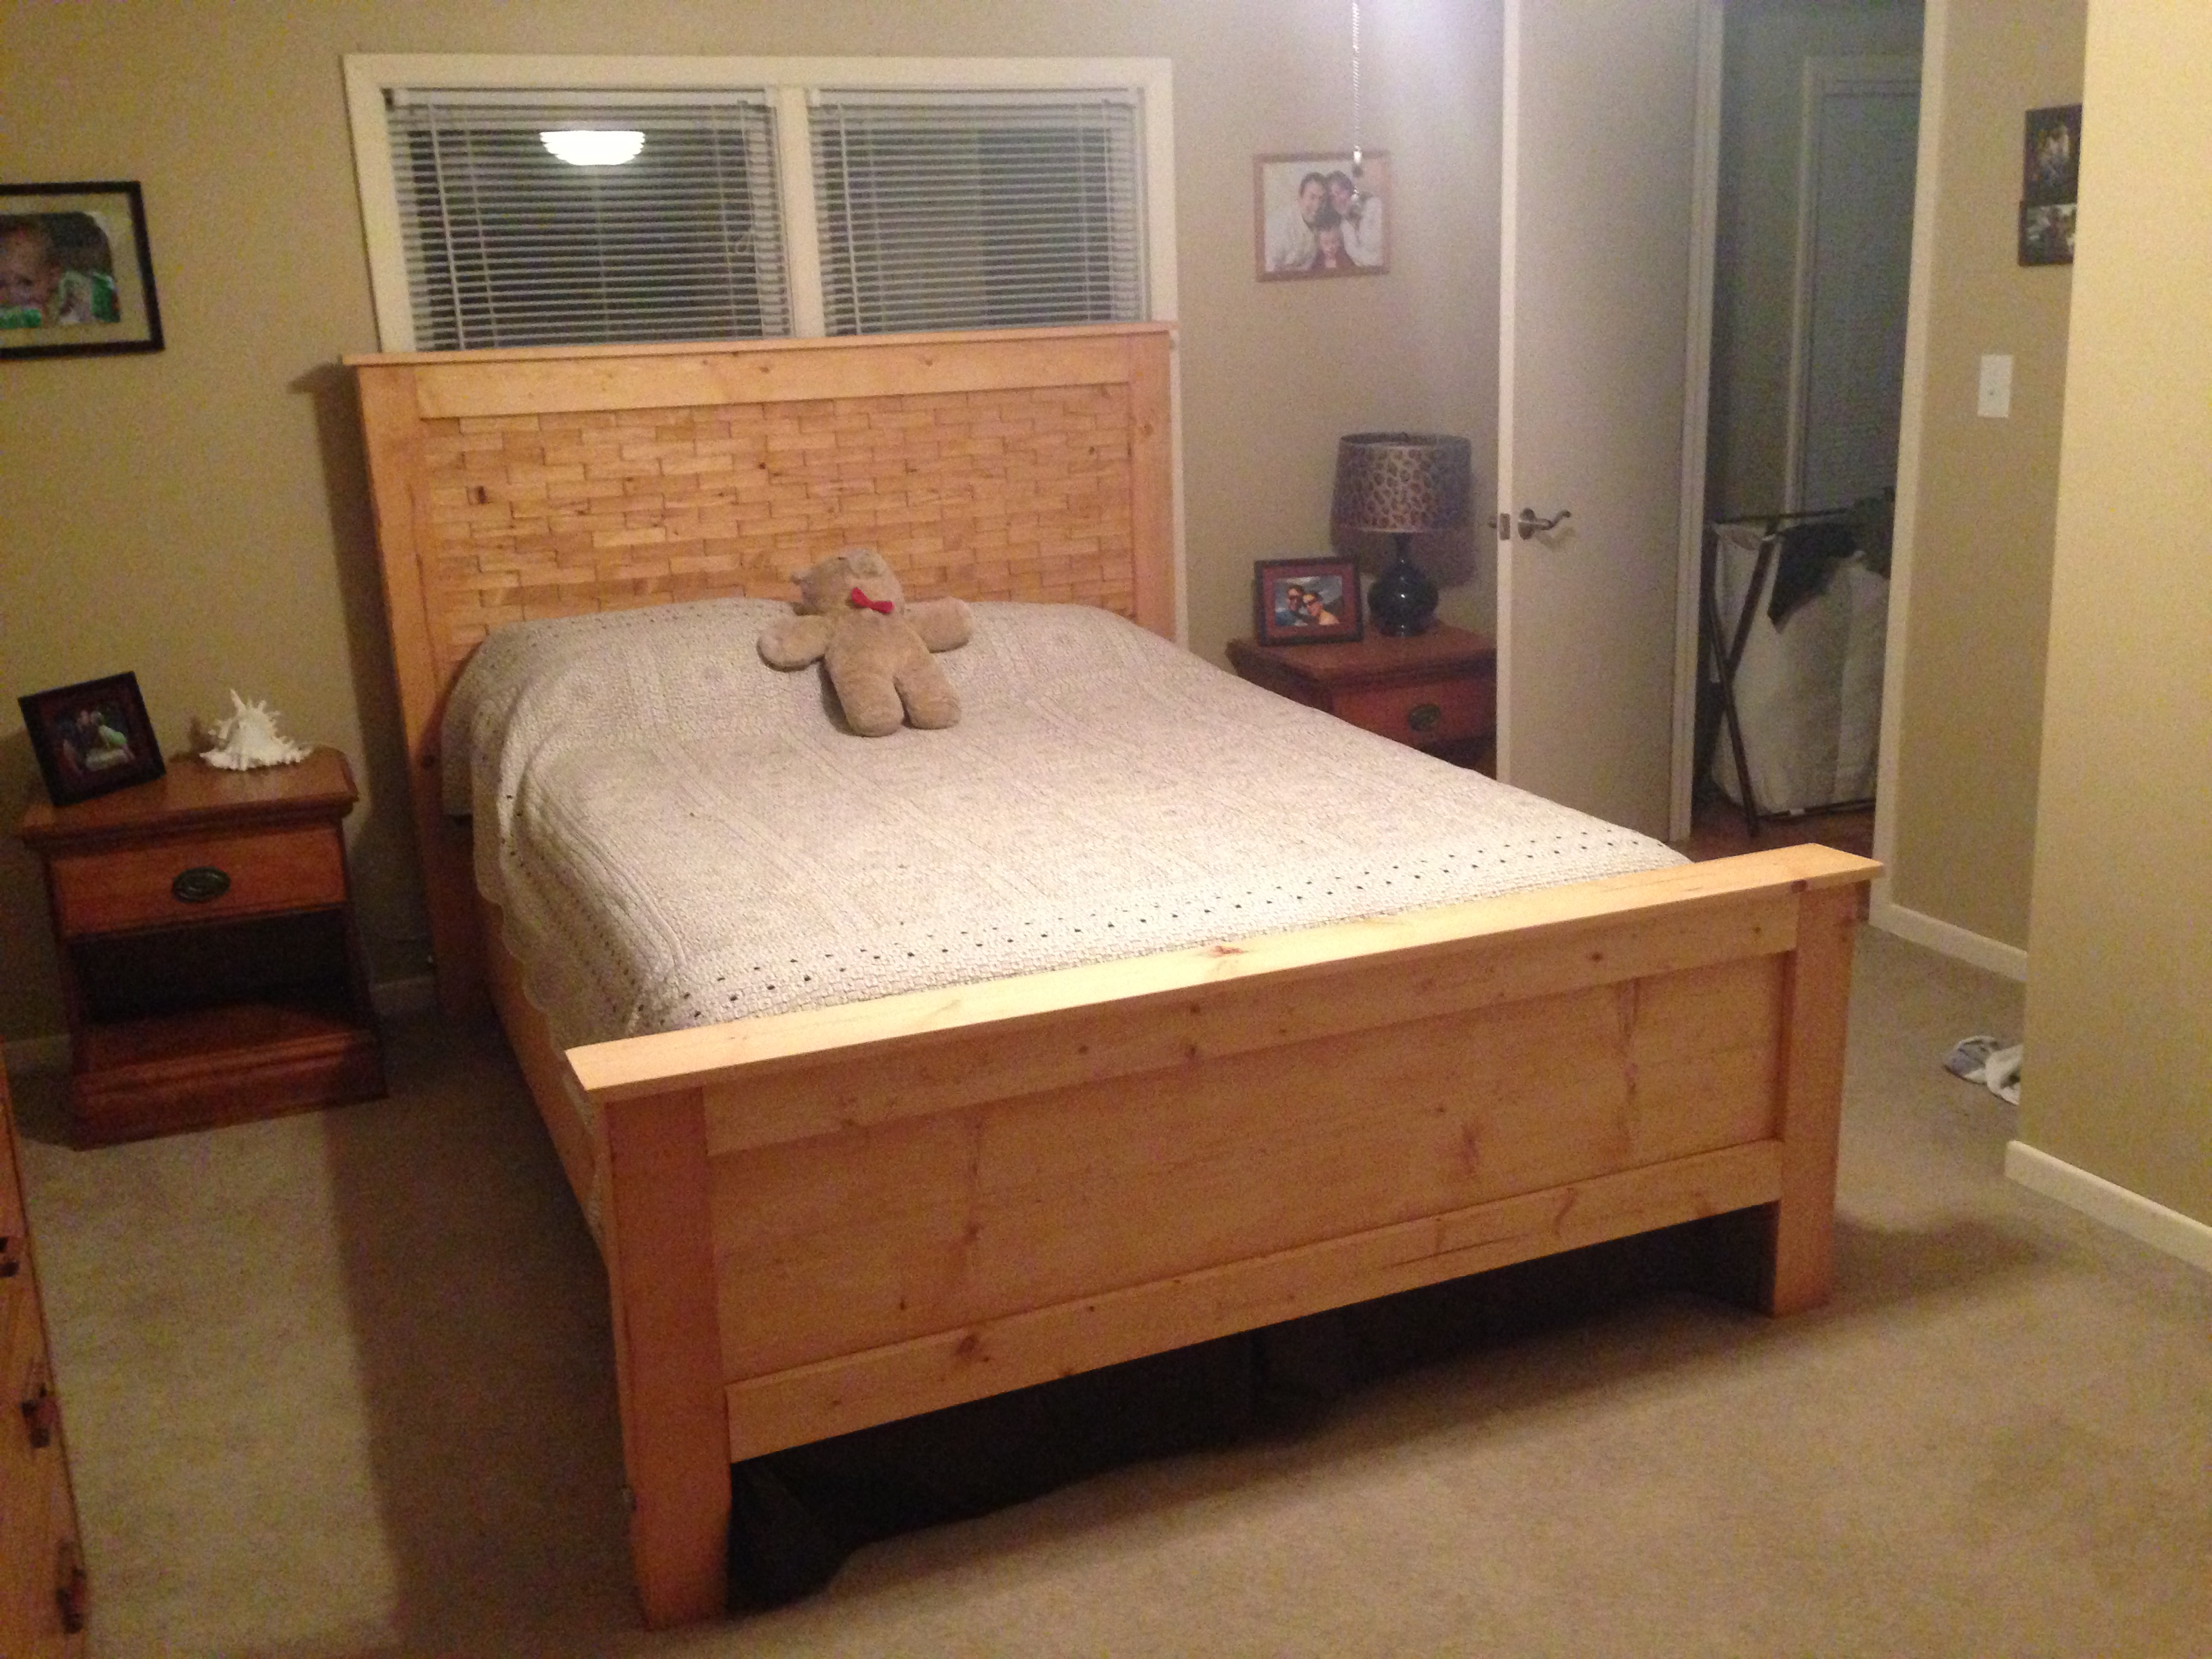 Ana white diy wood shim bed plans queen projects